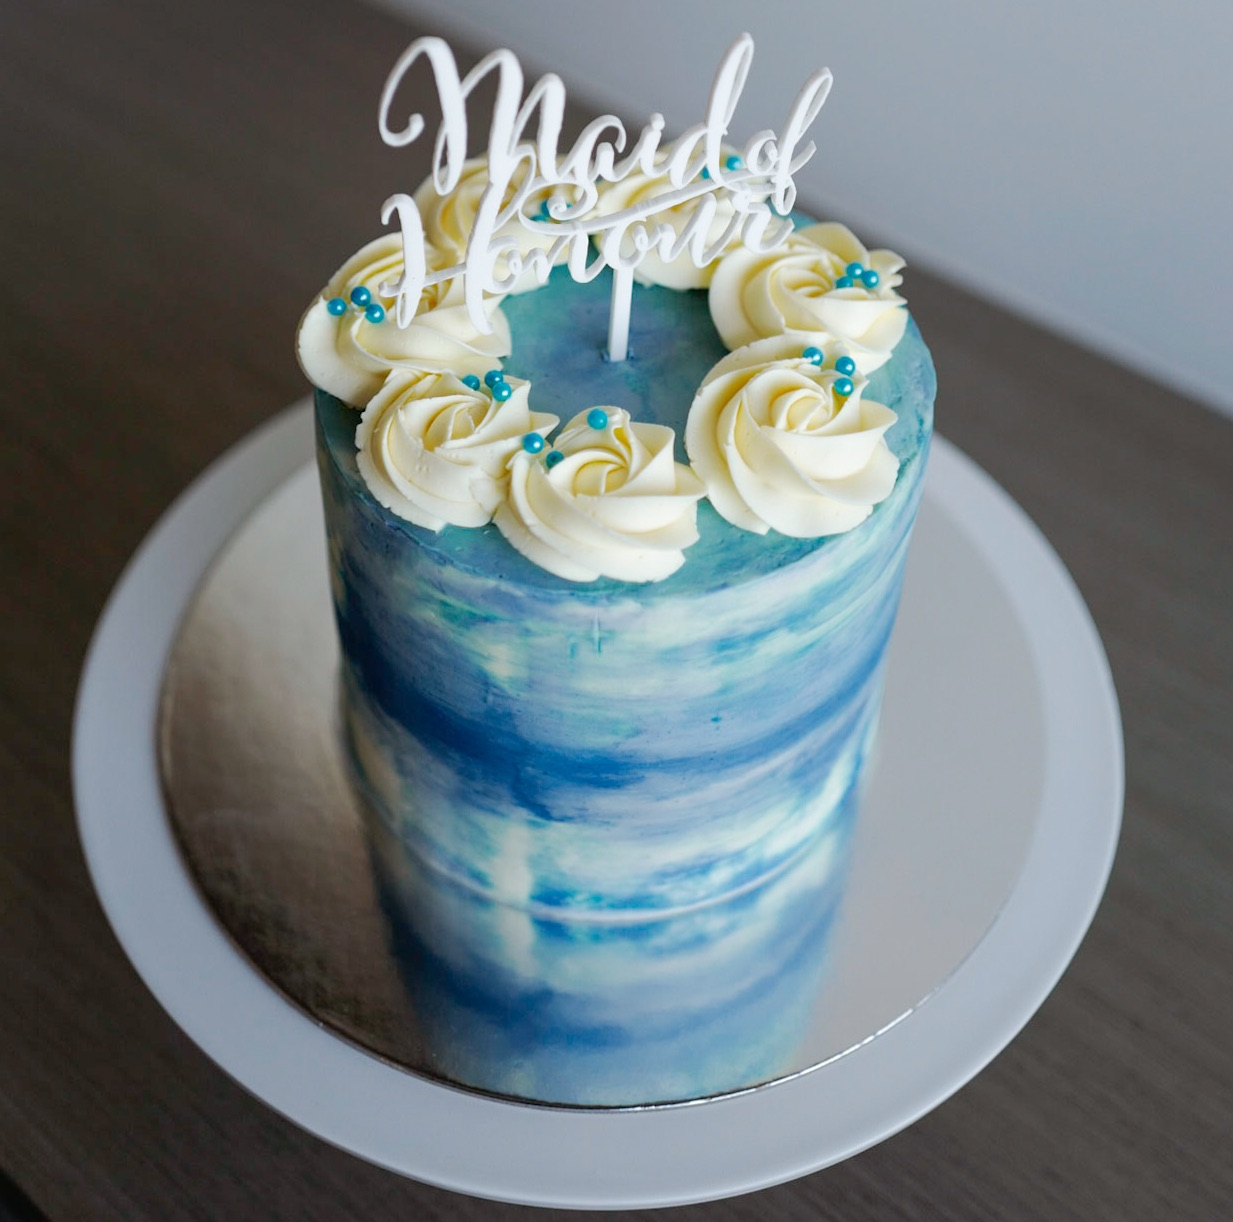 Birthday Cake With Drippy Icing